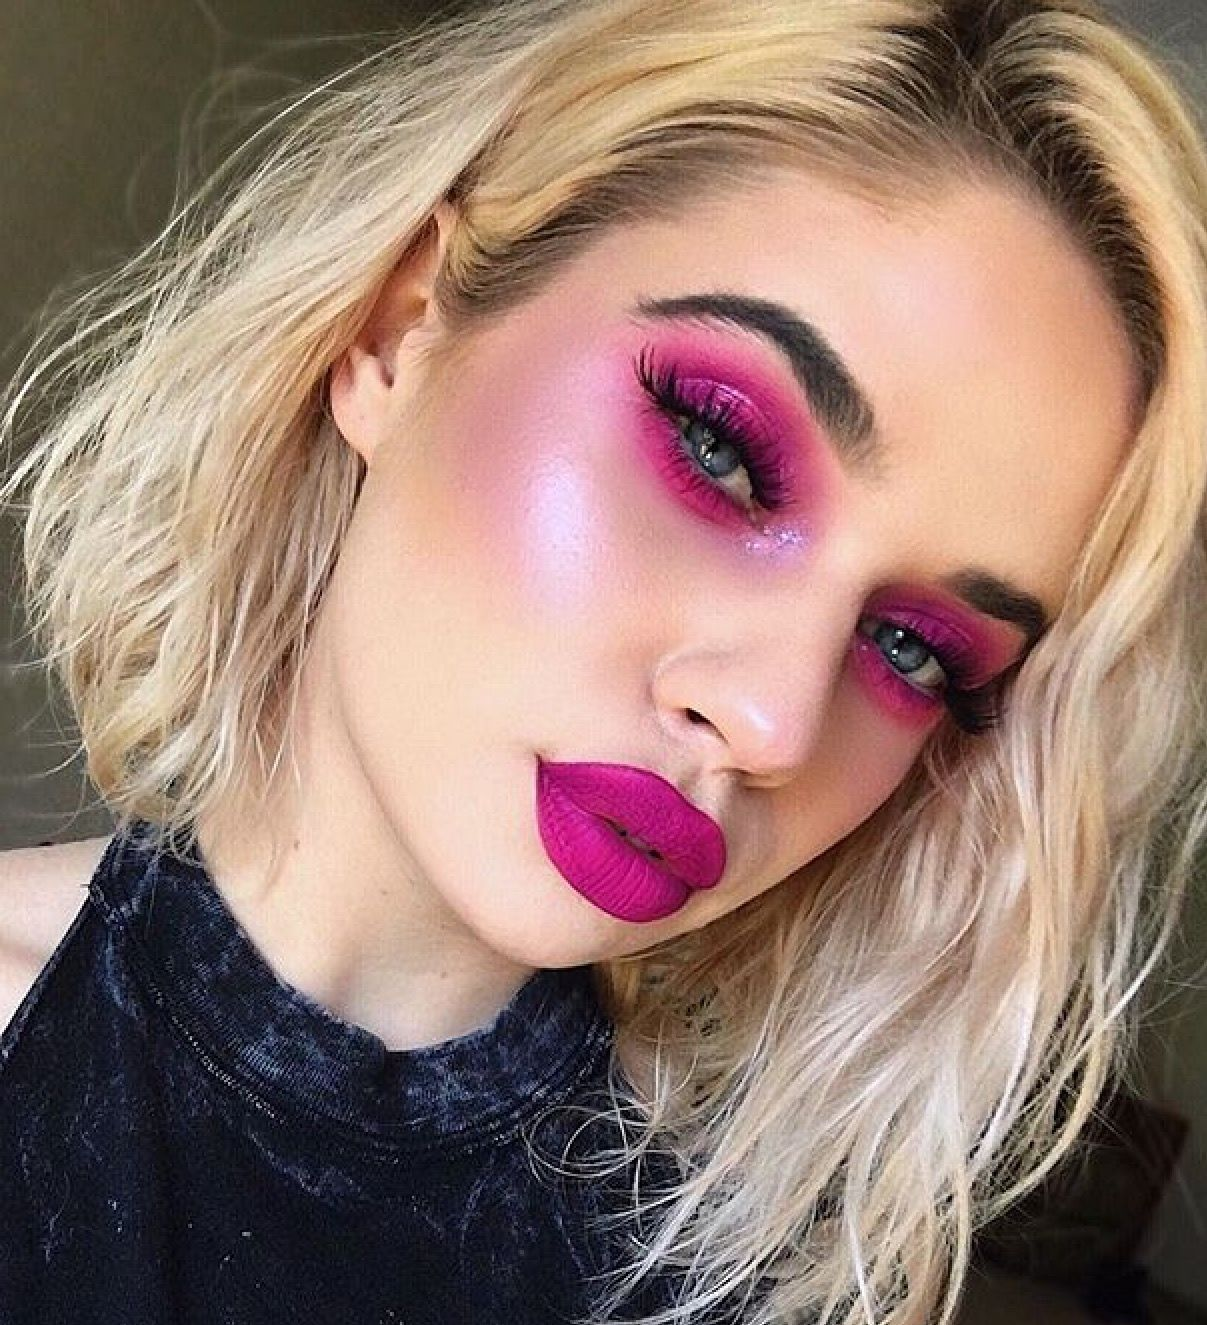 Pin by julia on make up pinterest makeup instagram and makeup ideas